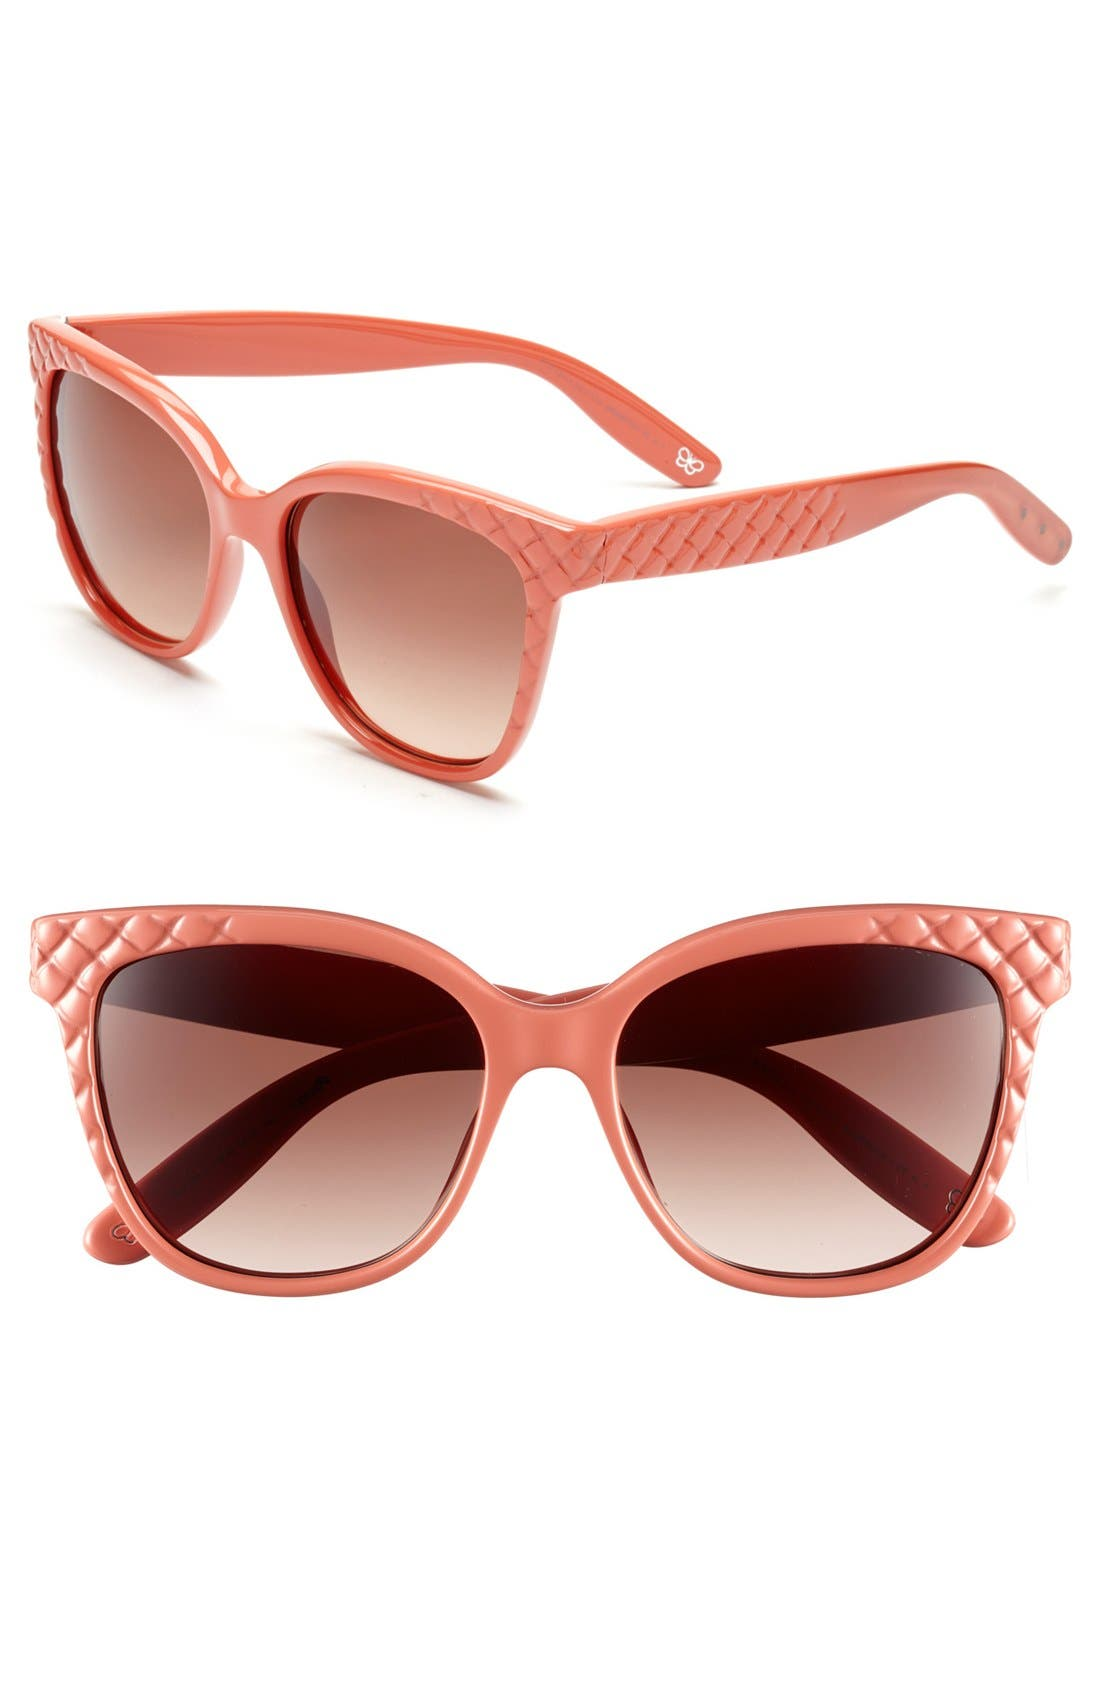 Alternate Image 1 Selected - Bottega Veneta 55mm Retro Sunglasses